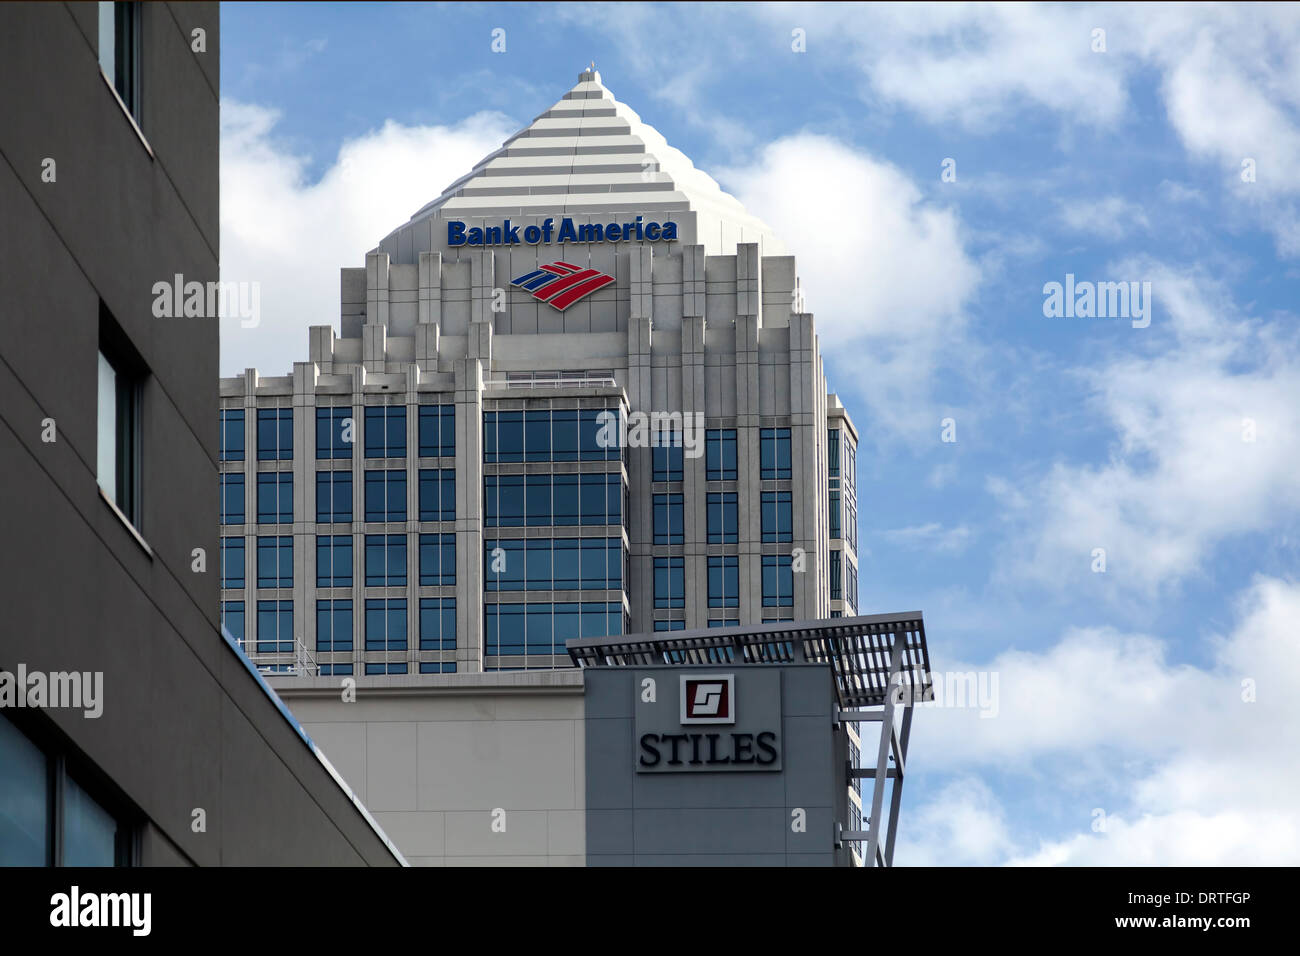 Bank of American and Stiles Construction highrise towers in downtown Fort Lauderdale, Florida. - Stock Image